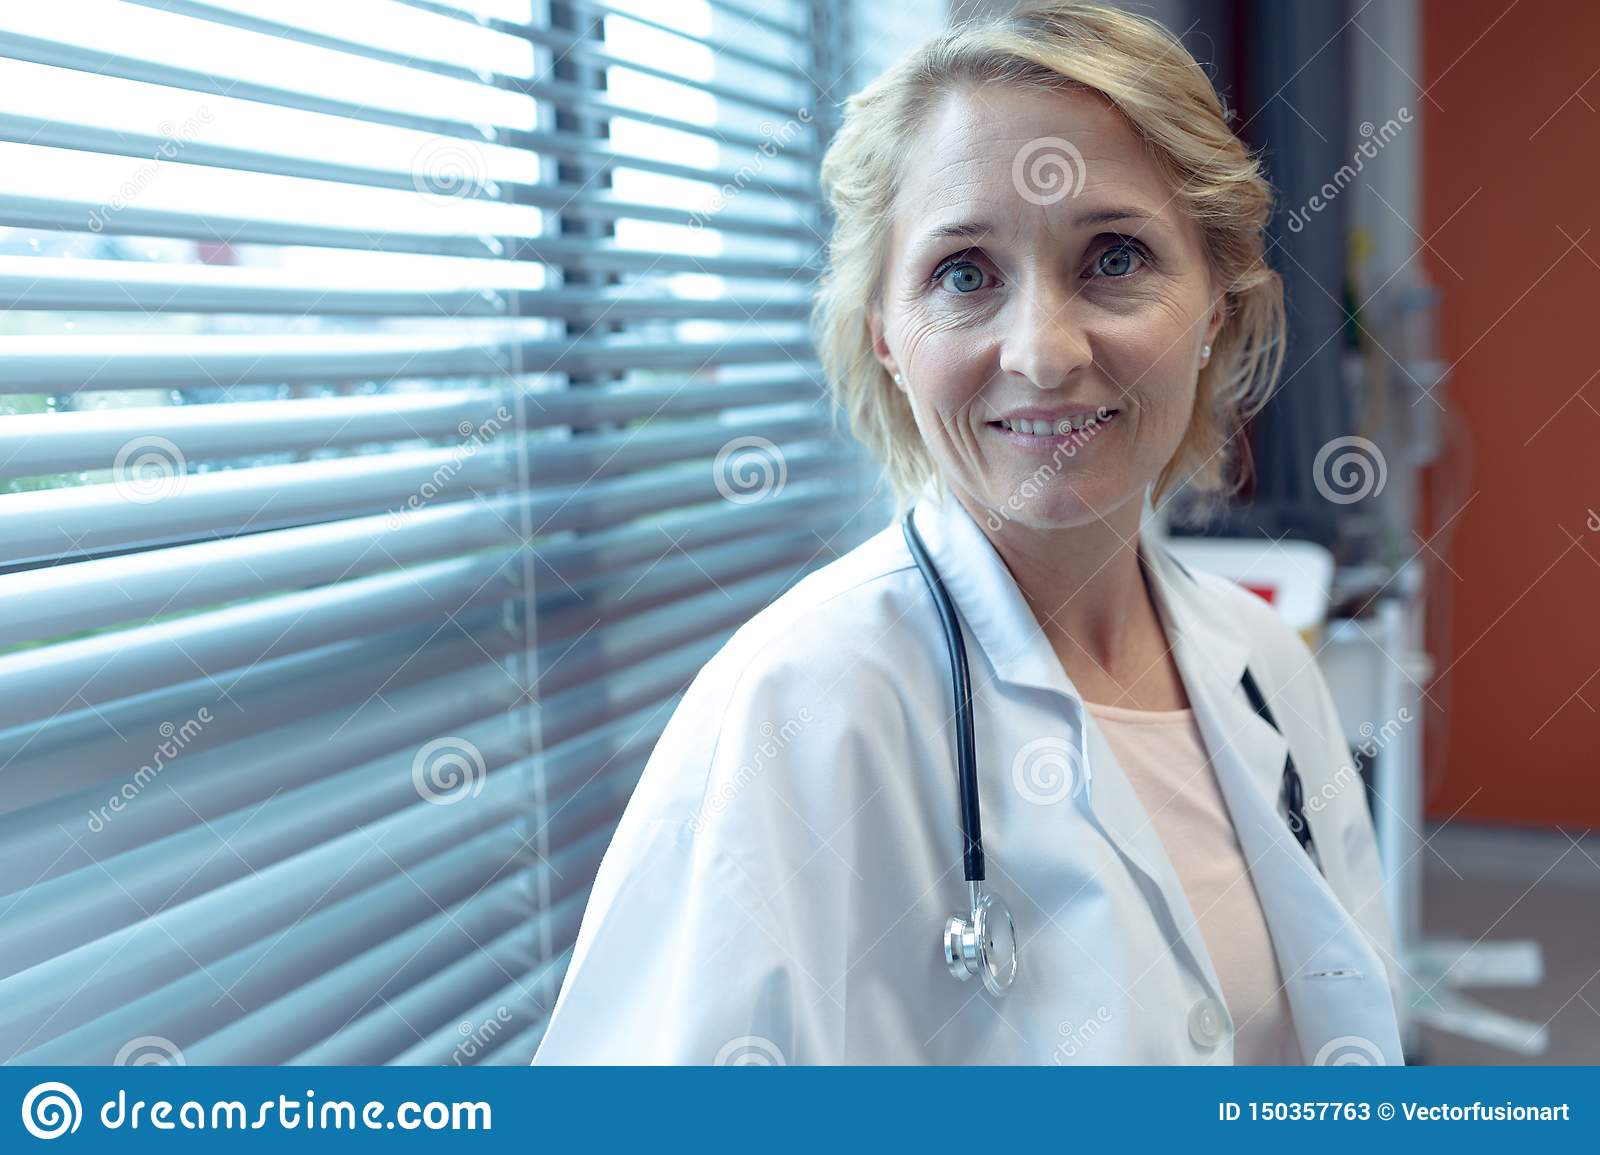 Female doctor smiling in the hospital